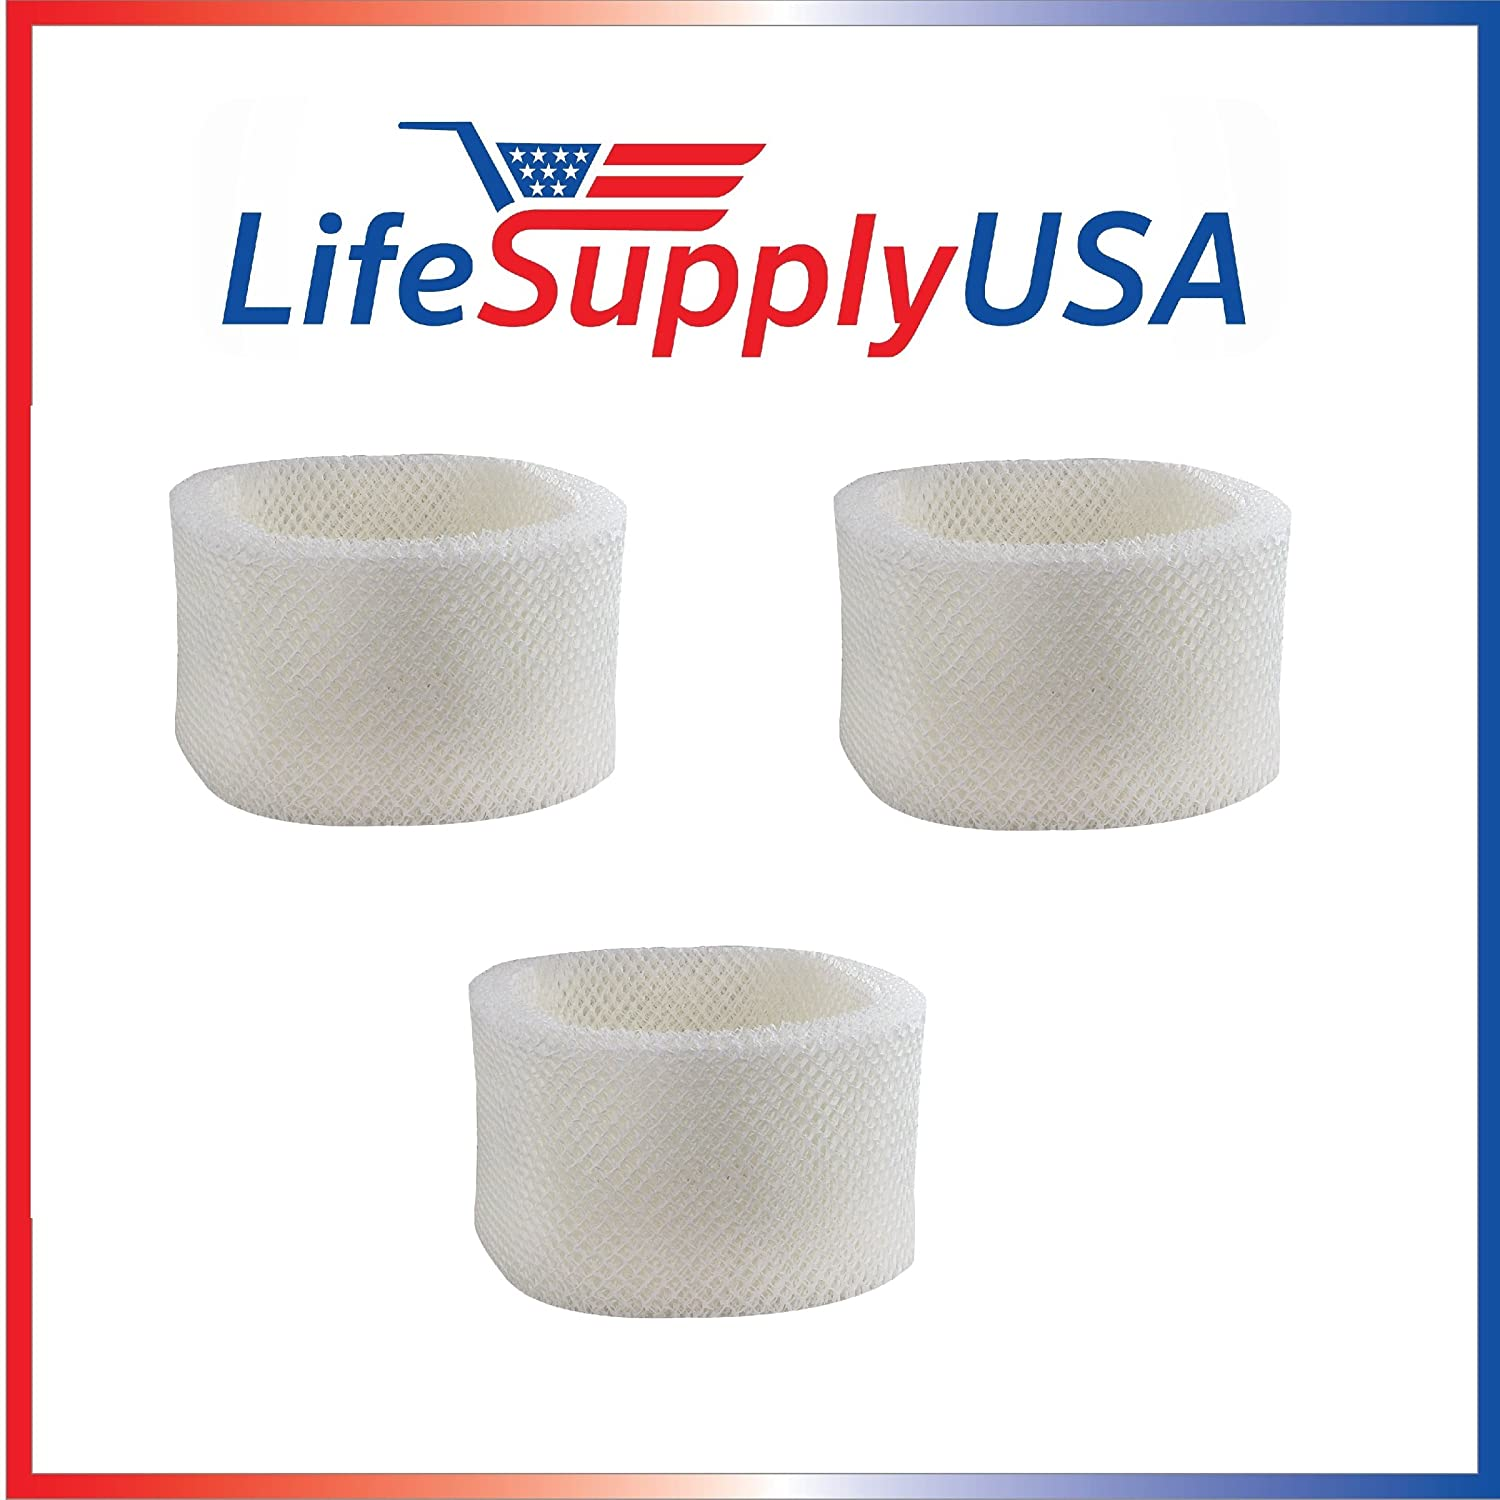 LifeSupplyUSA 3 Pack Humidifier Filter B Compatible with Holmes HWF64, HM1645, HM1730, HM1745, HM1746, HM1750, HM2220 & HM2200, Compatible with Sunbeam SCM1745 & SCM1746 Bionaire